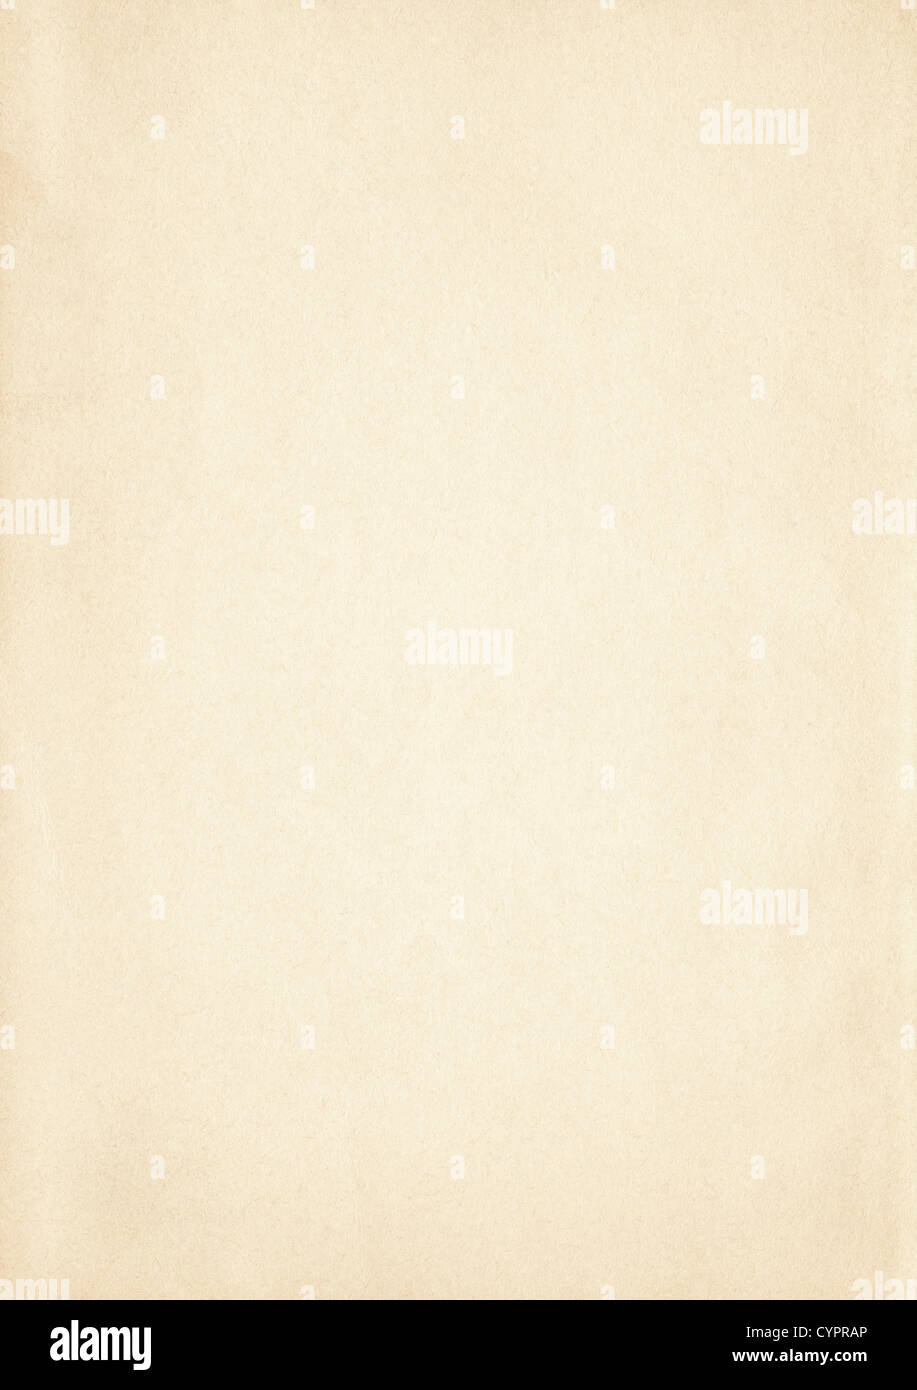 Seamless paper texture - Stock Image